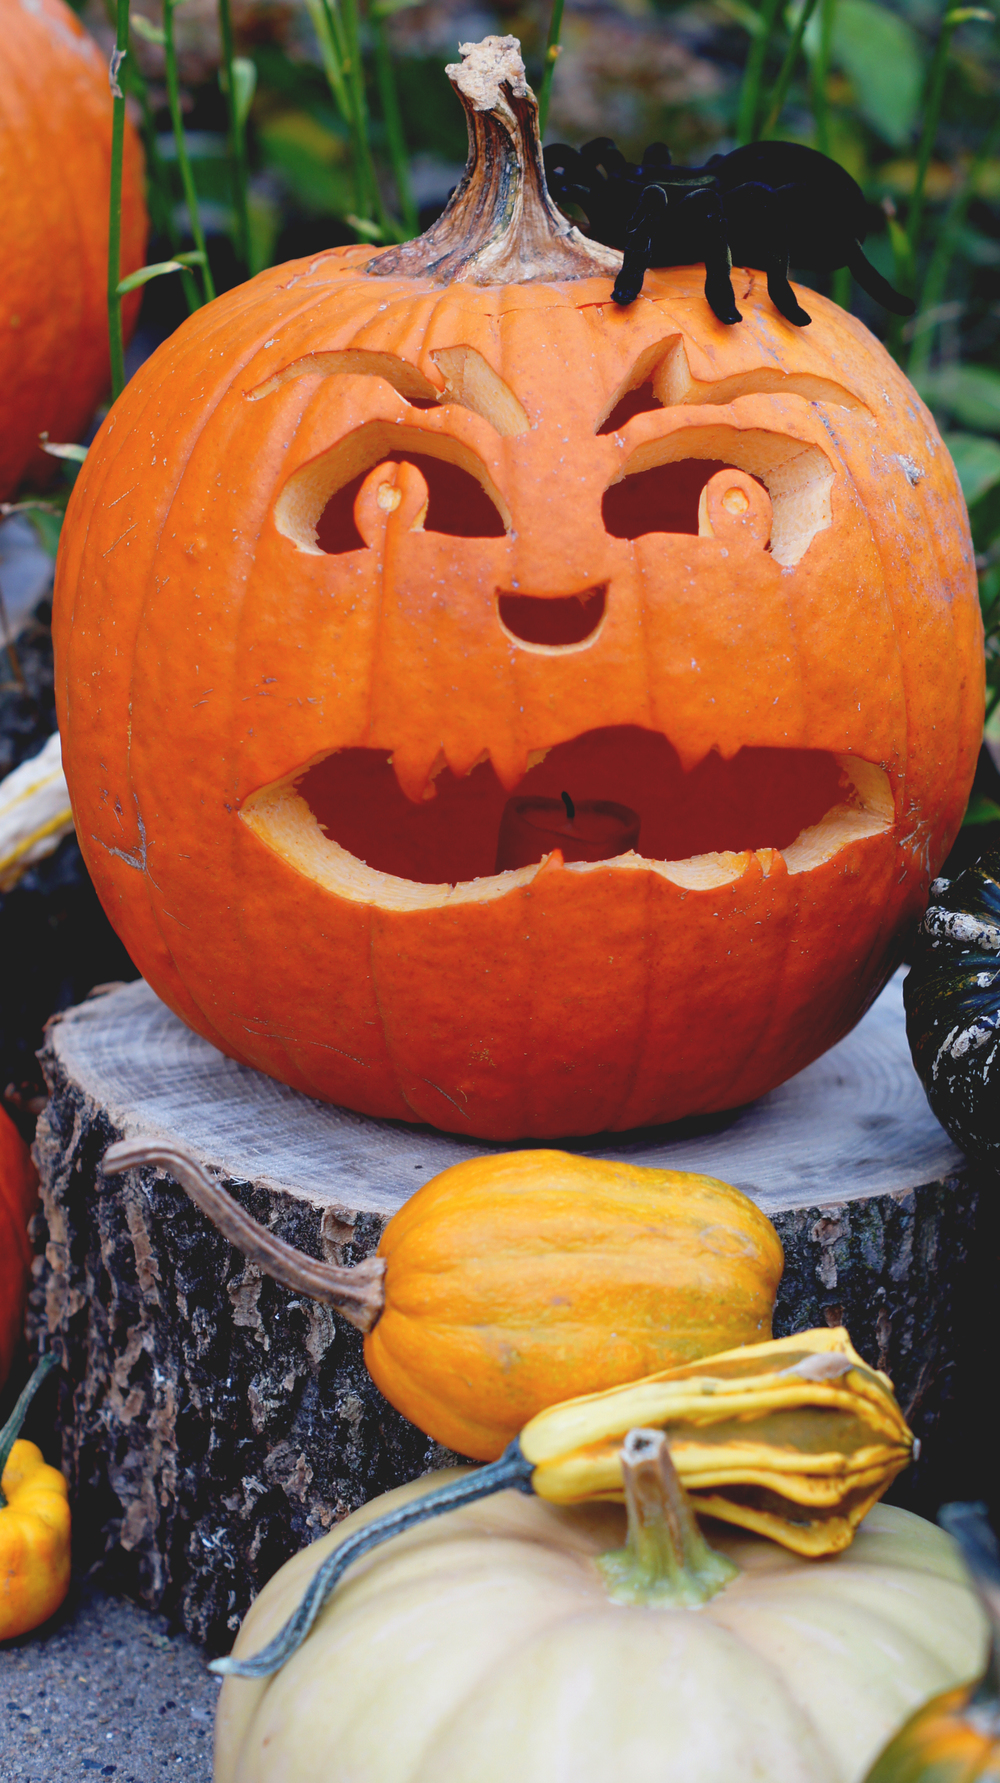 Carved Pumpkin 5.jpg